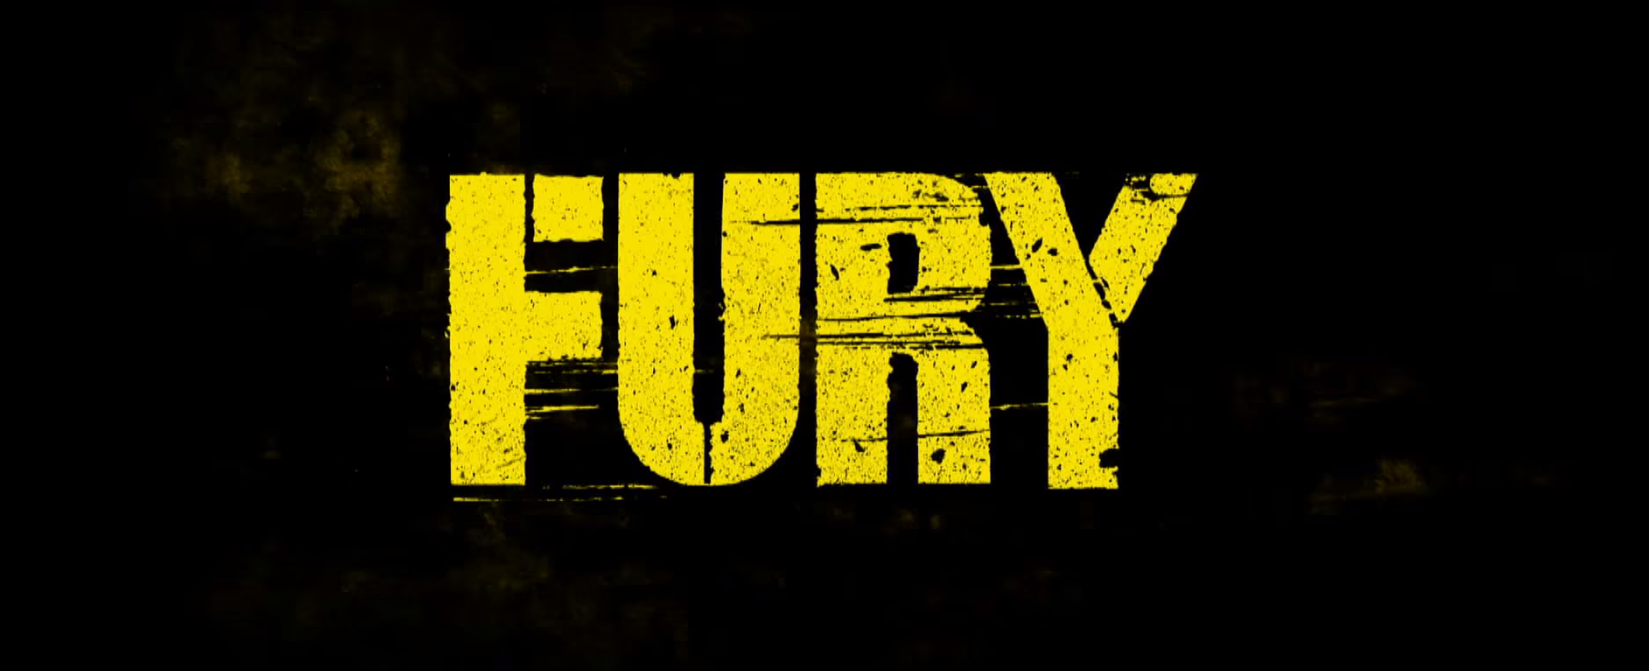 FURY movie logo title screen